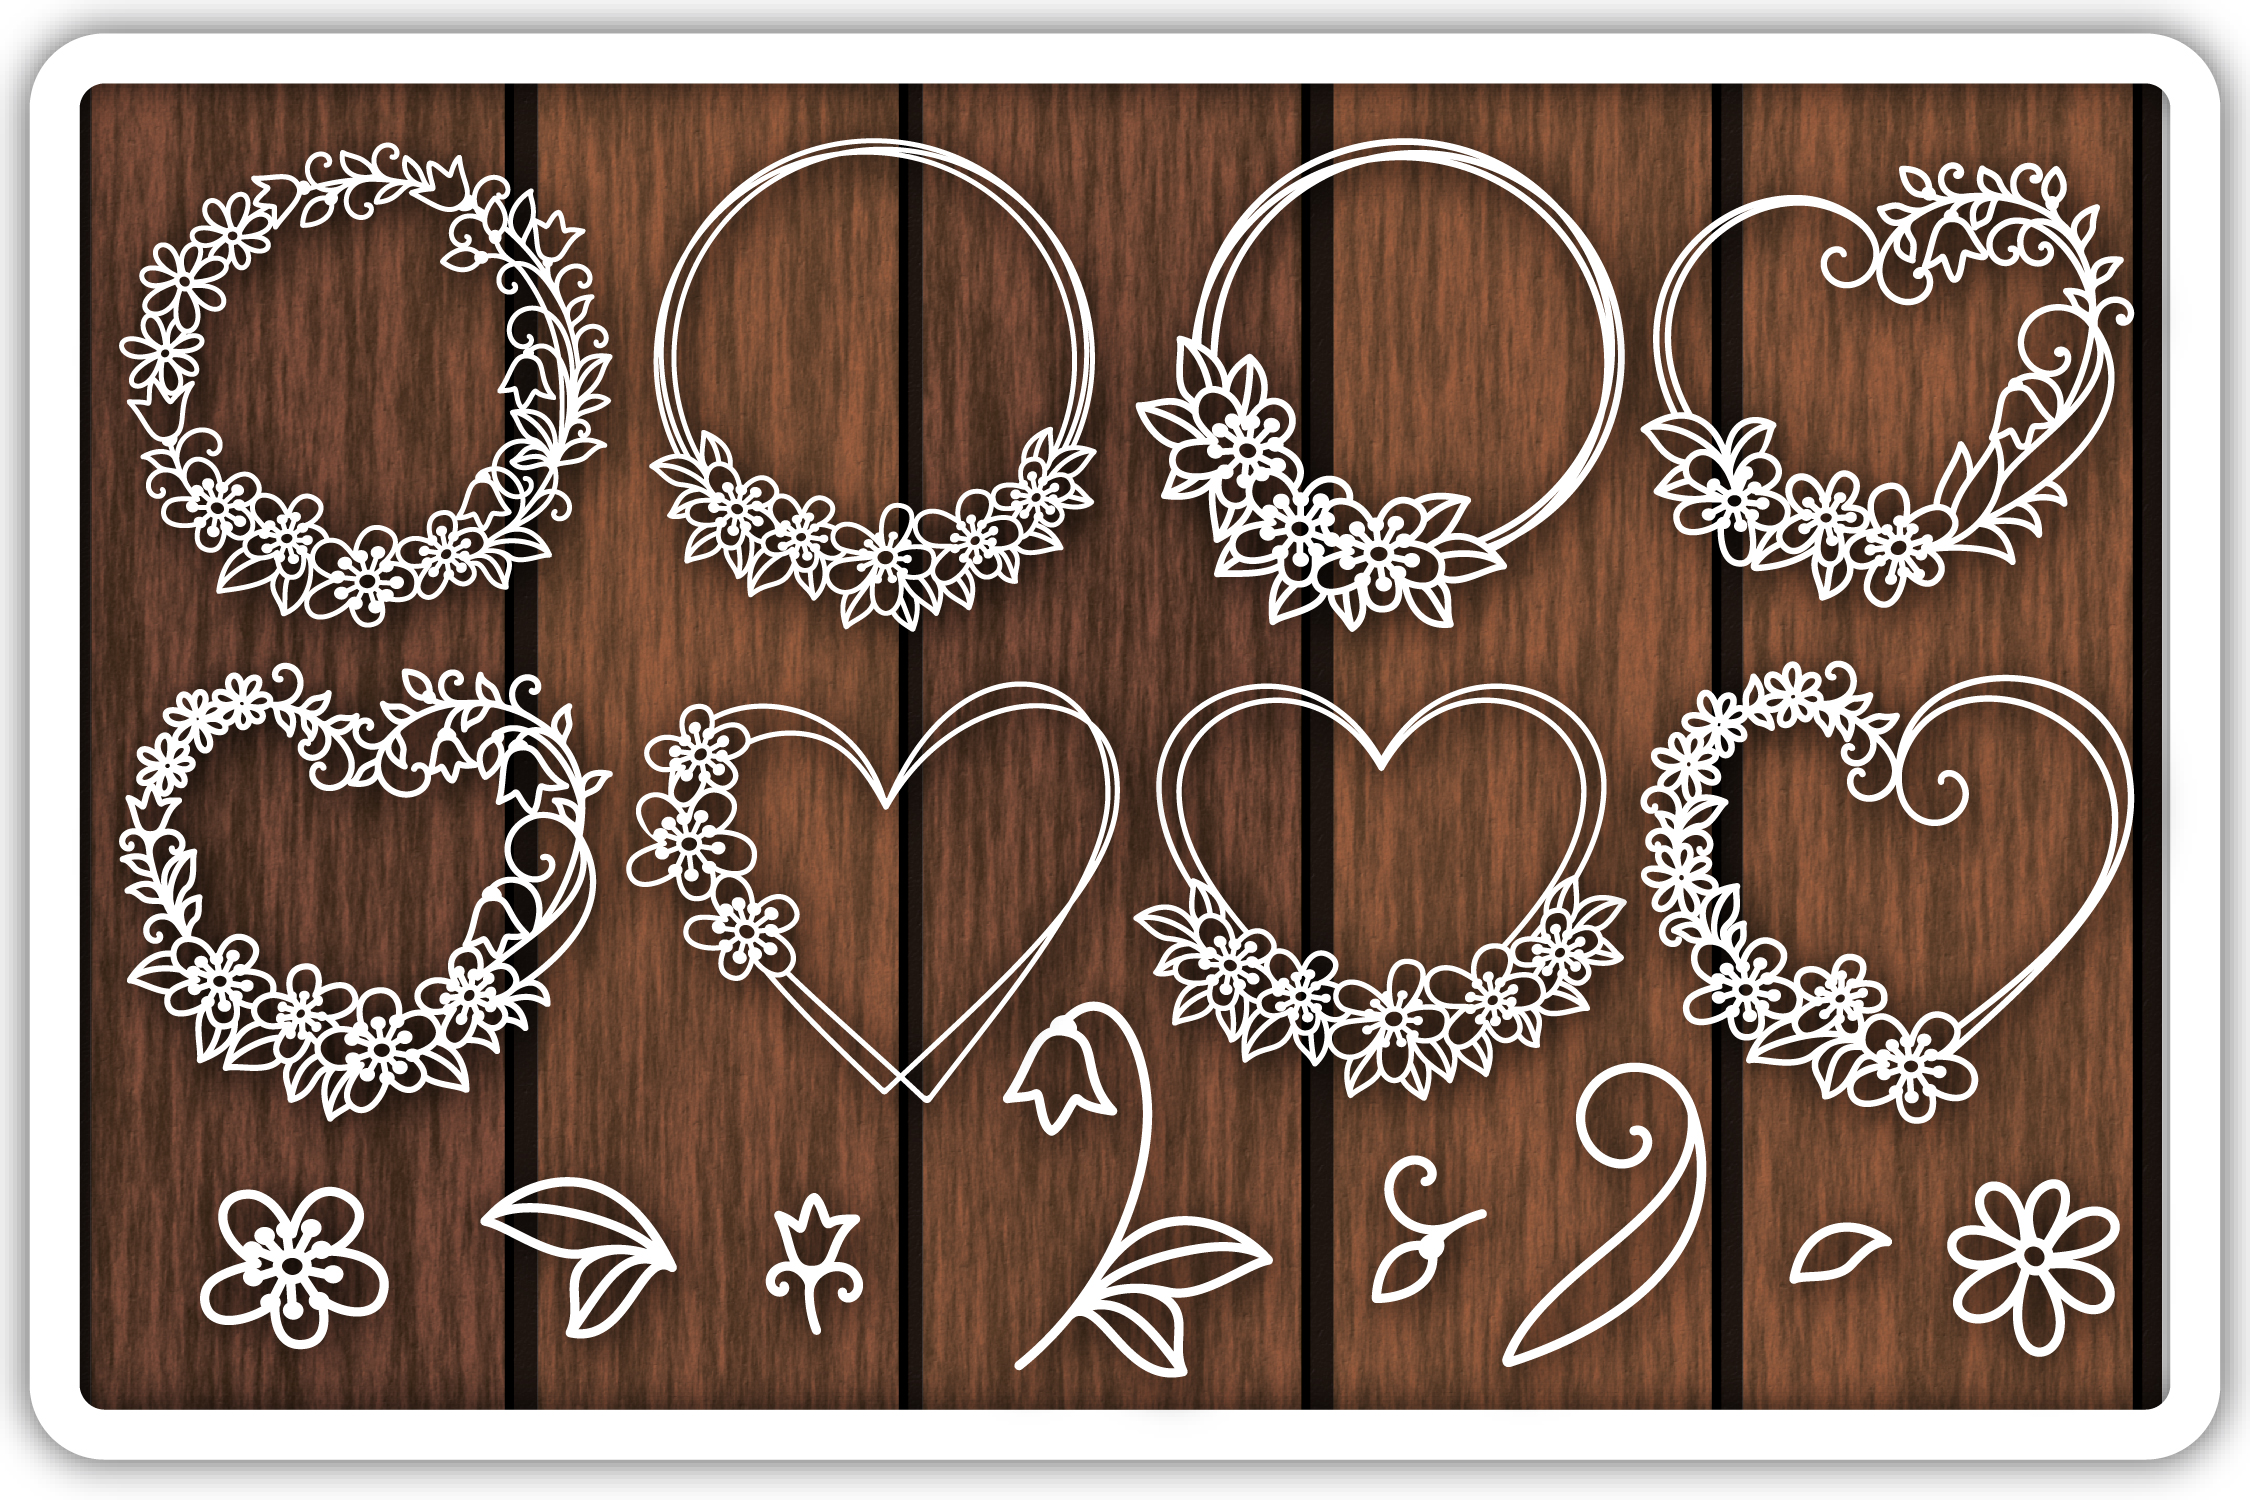 Floral Wreath Cutting Templates, Flowers SVG File